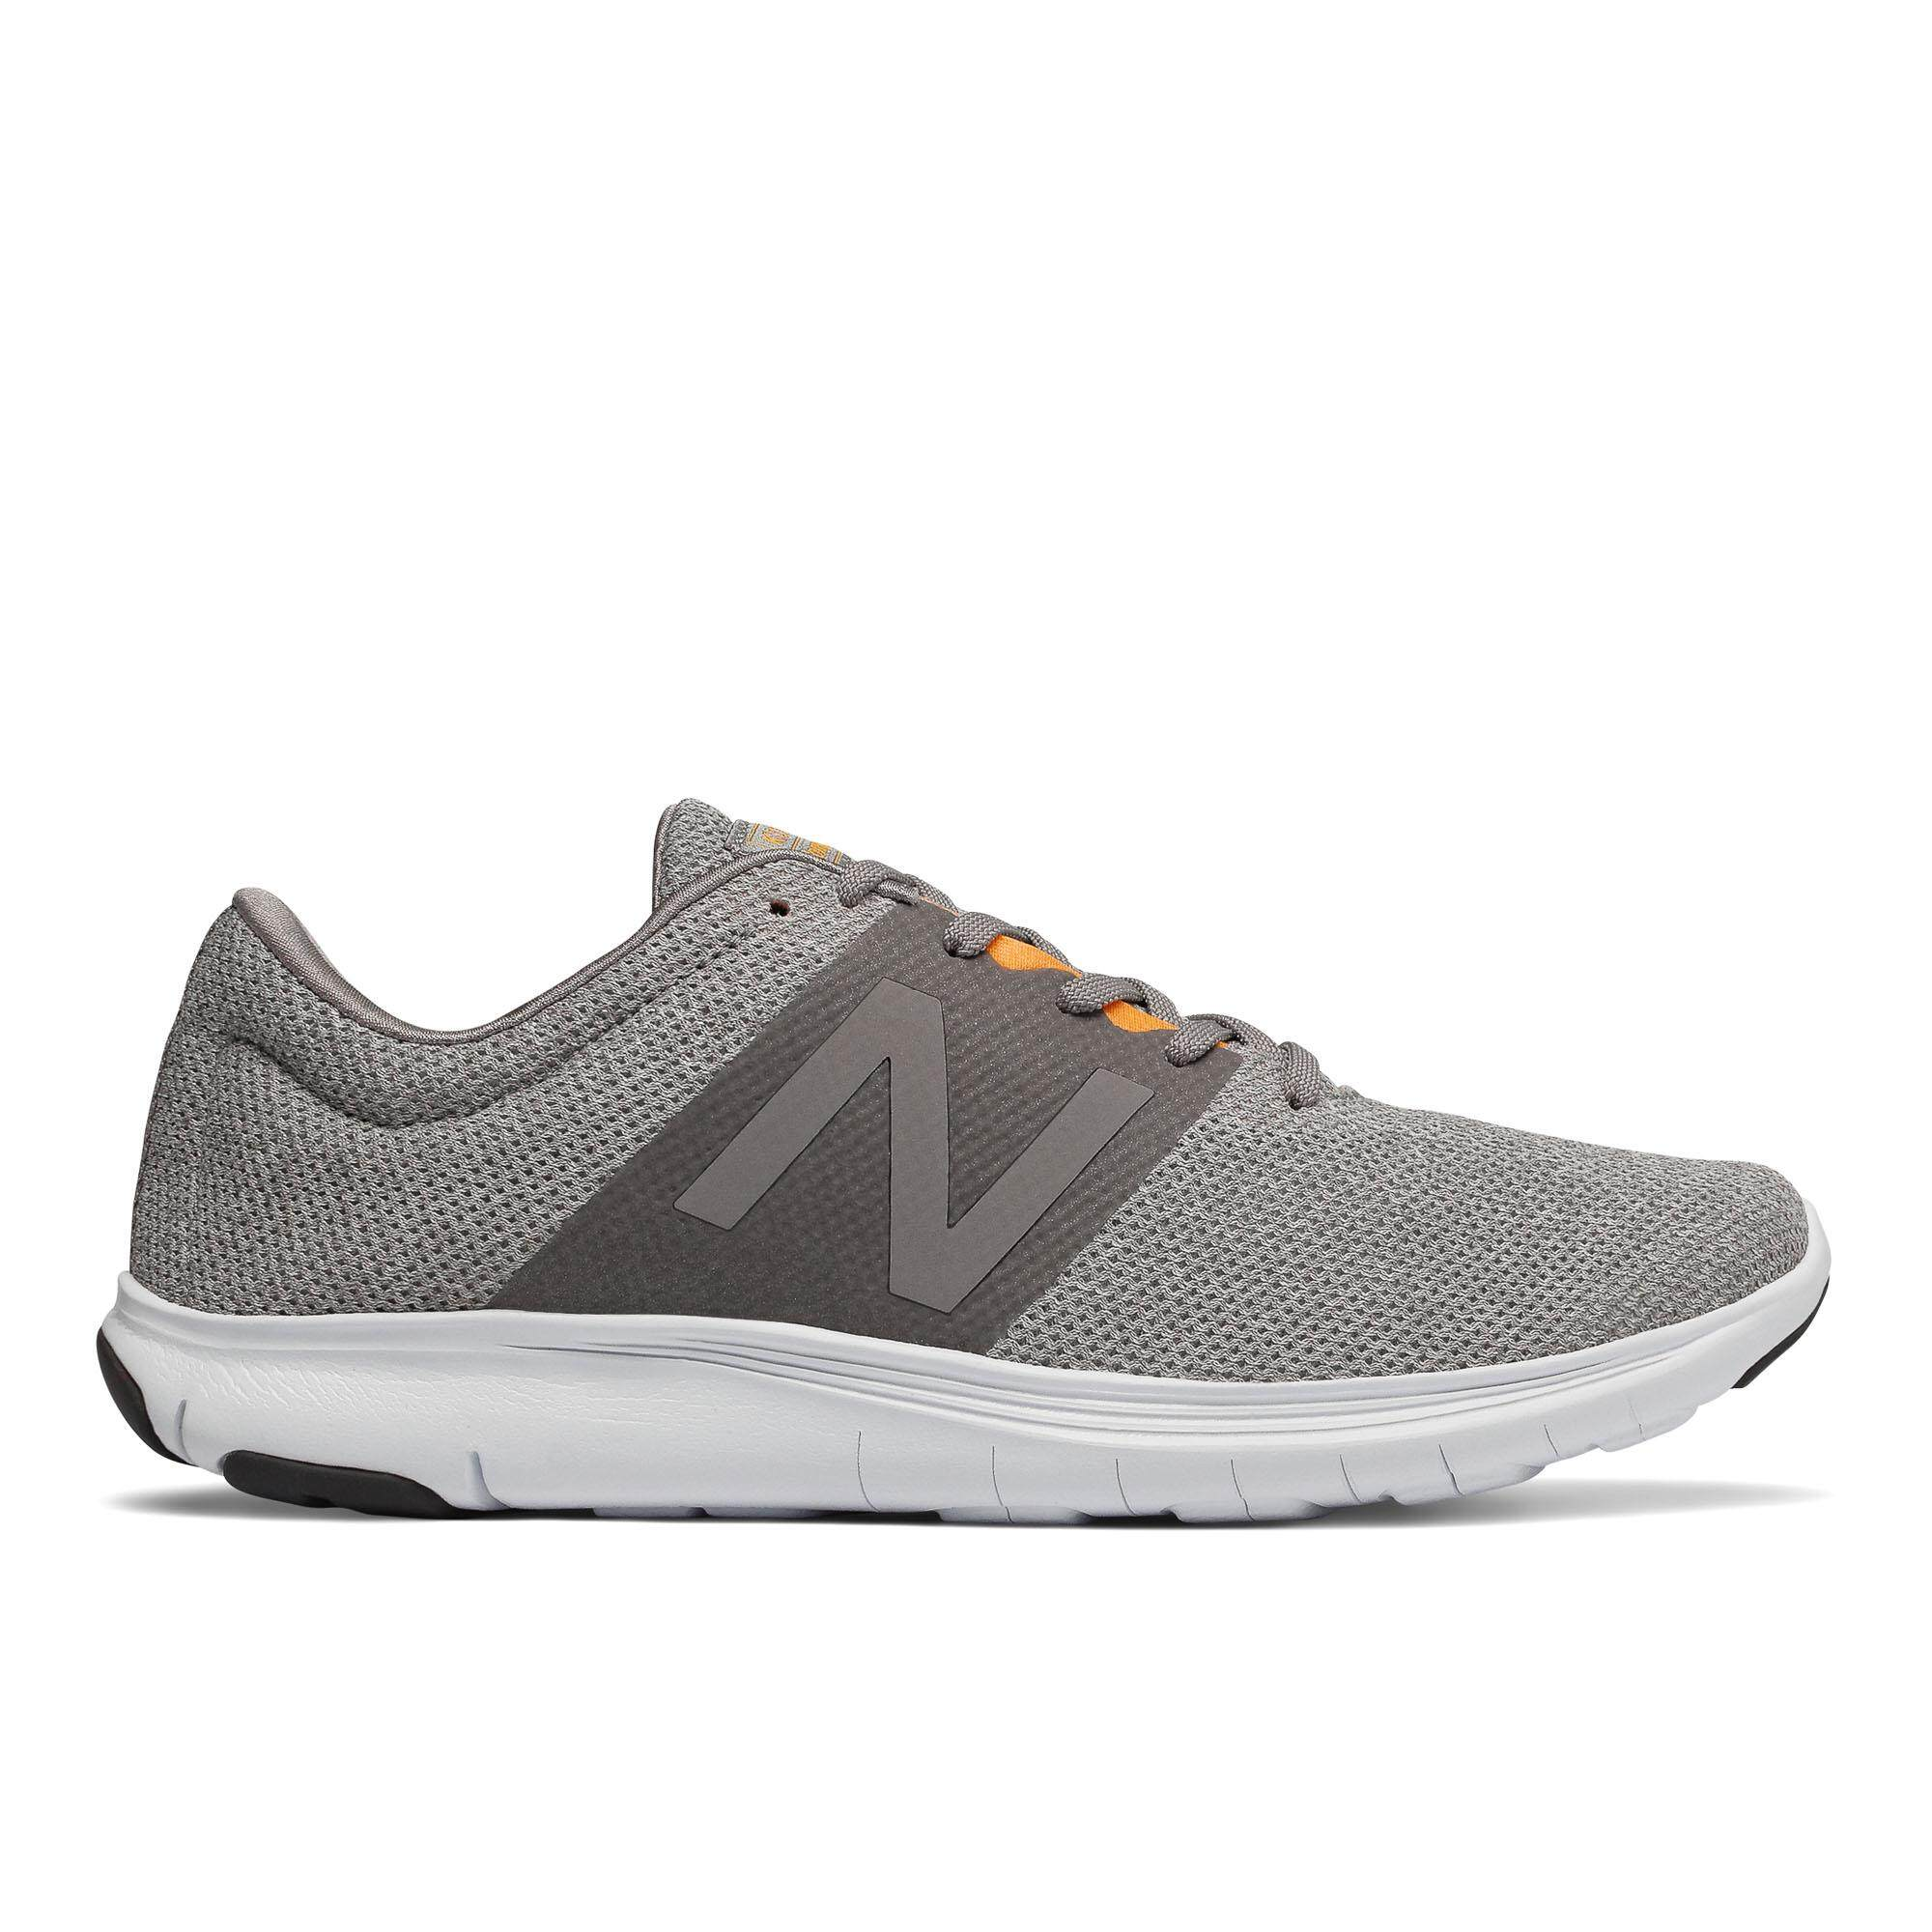 e90db9c0a211 New Balance Men's Performance Shoes - Koze (Grey)